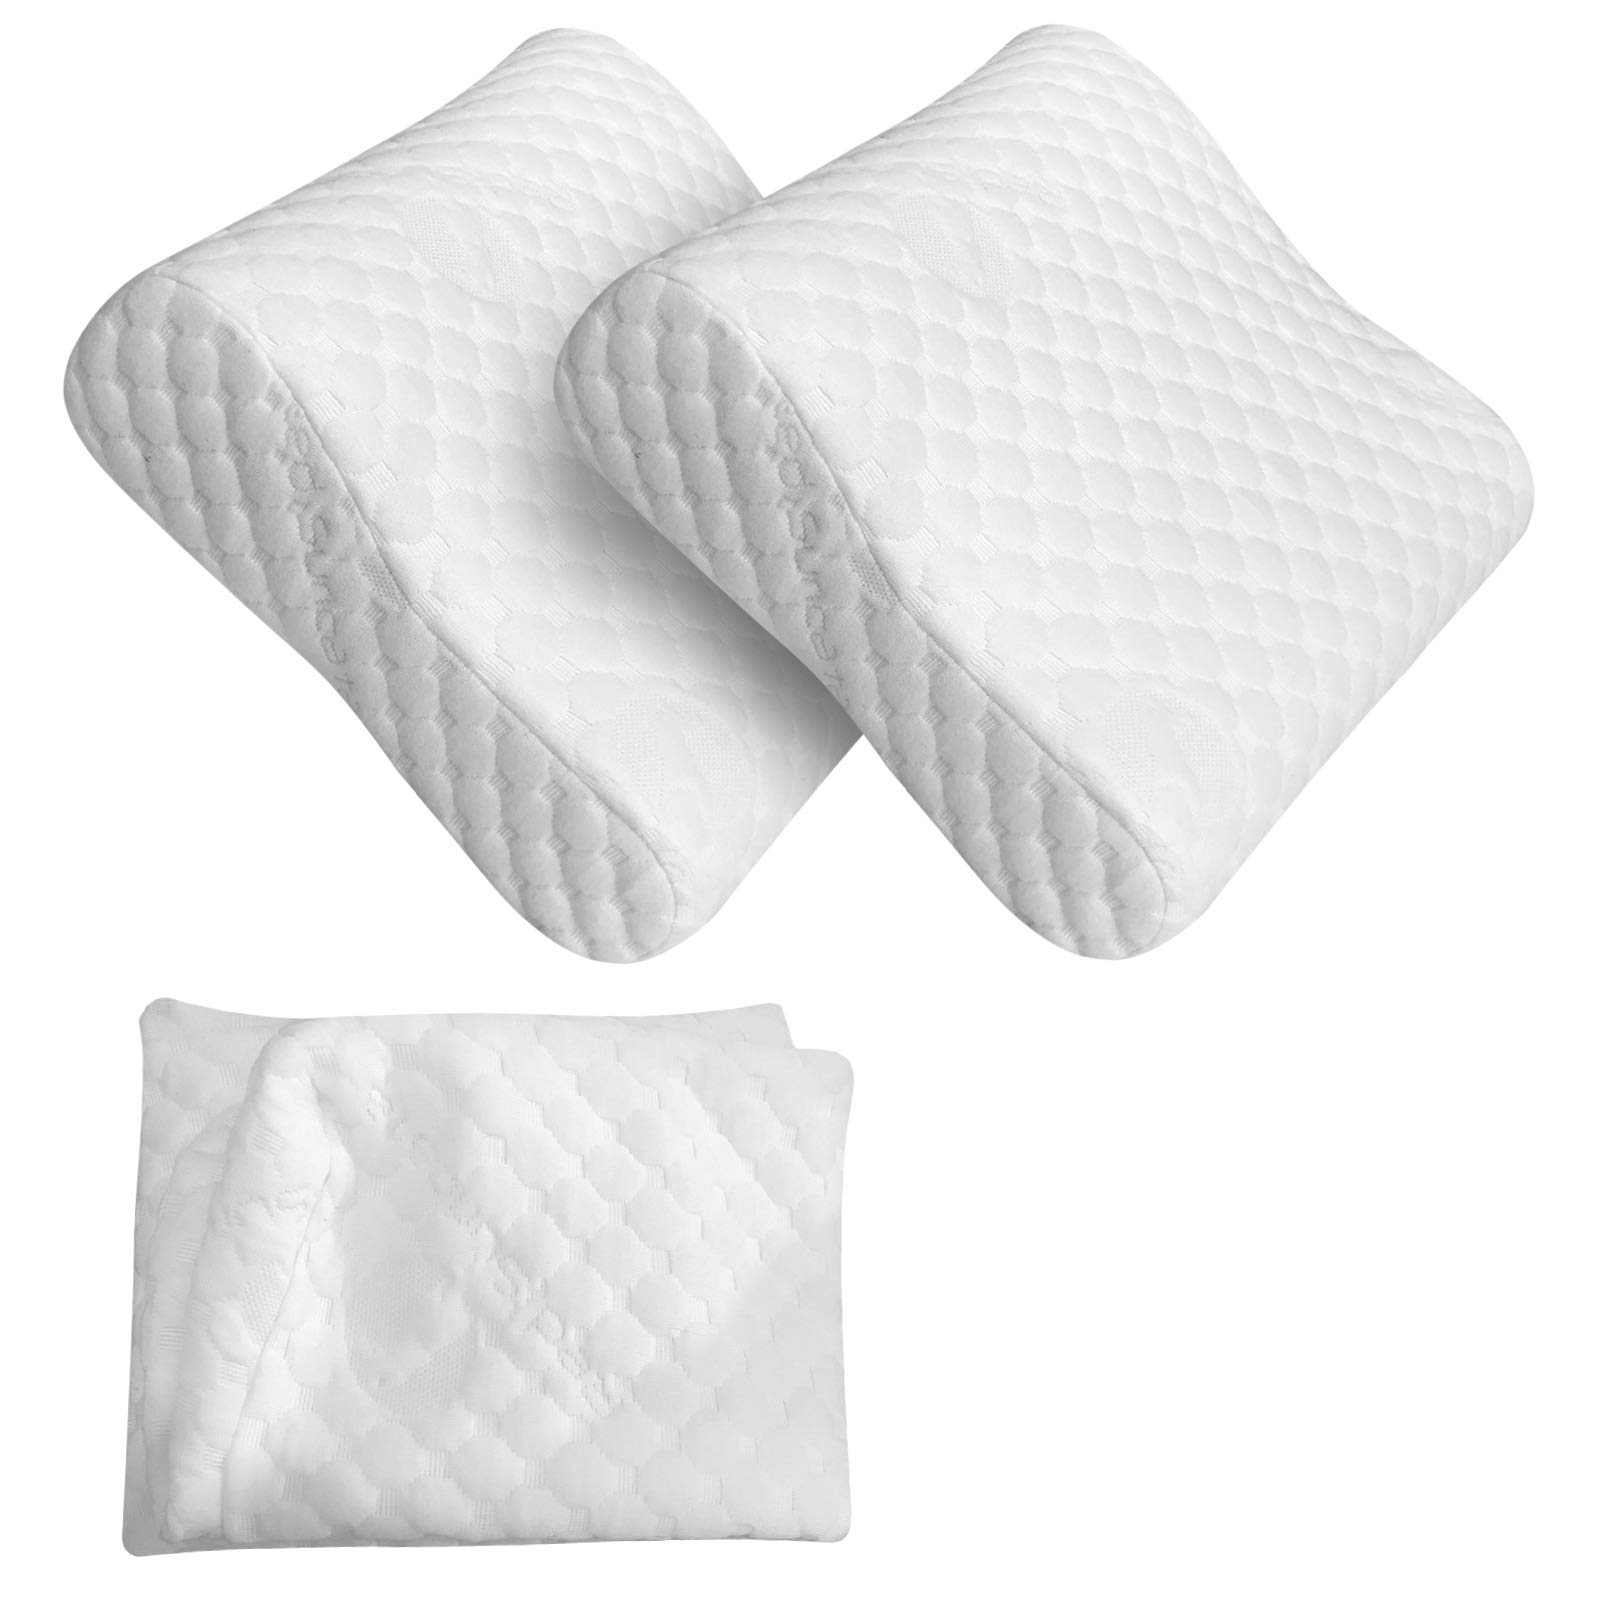 Red Suricata 2 Travel Contour Pillows & Double Pillowcase Bundle - Compact Therapeutic Memory Foam Travel Pillow - Bamboo Cover - 3 Firmness Levels - Connect 2 for Full Size Pillow (Regular)